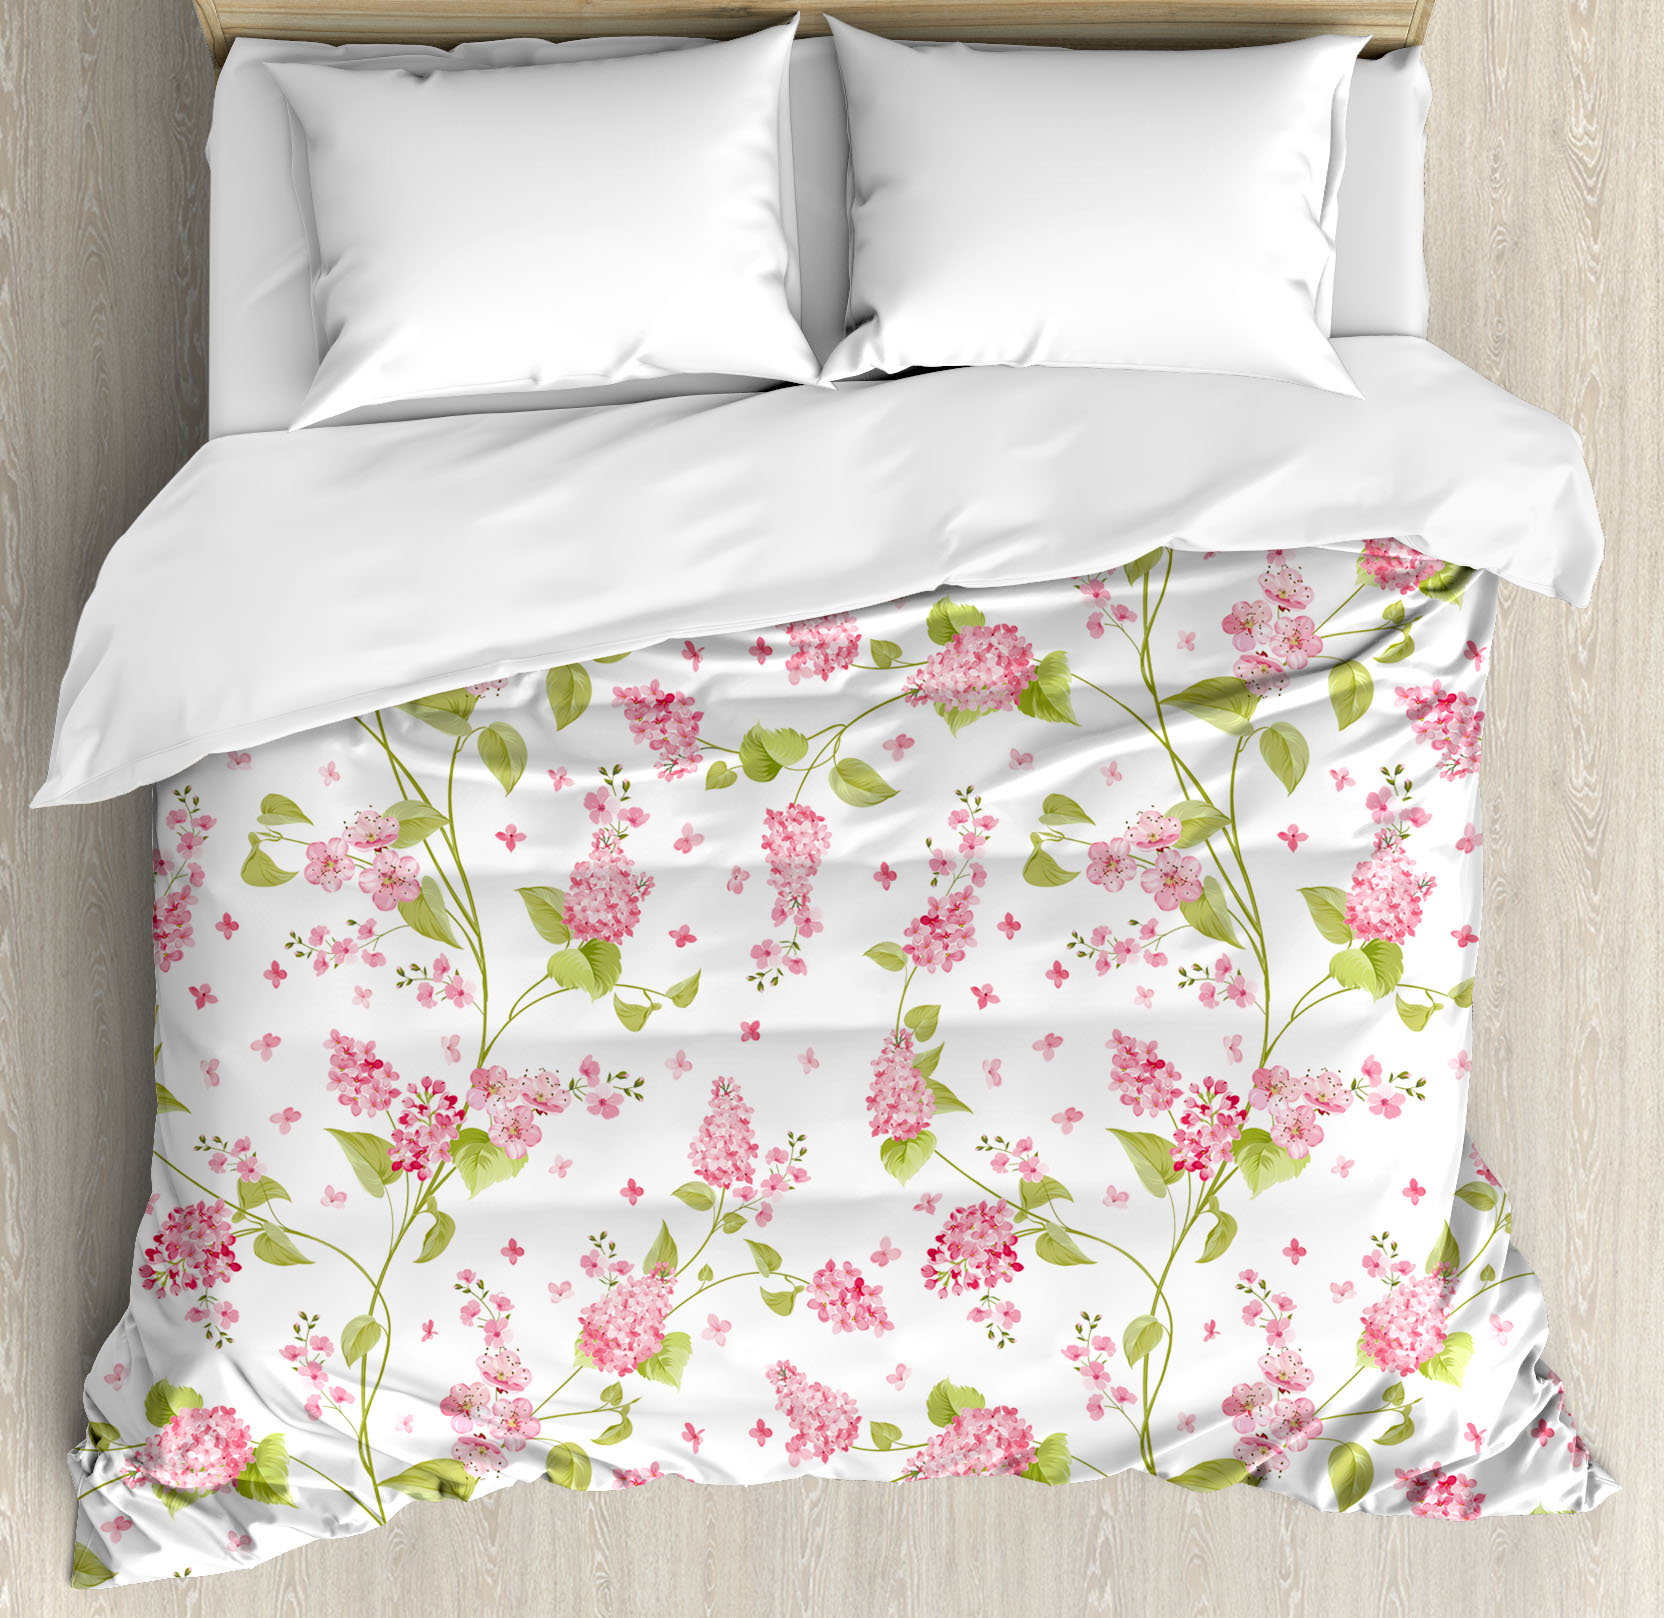 Shabby Chic Duvet Cover Set Nature Blossoms Buds Flowers Lavenders